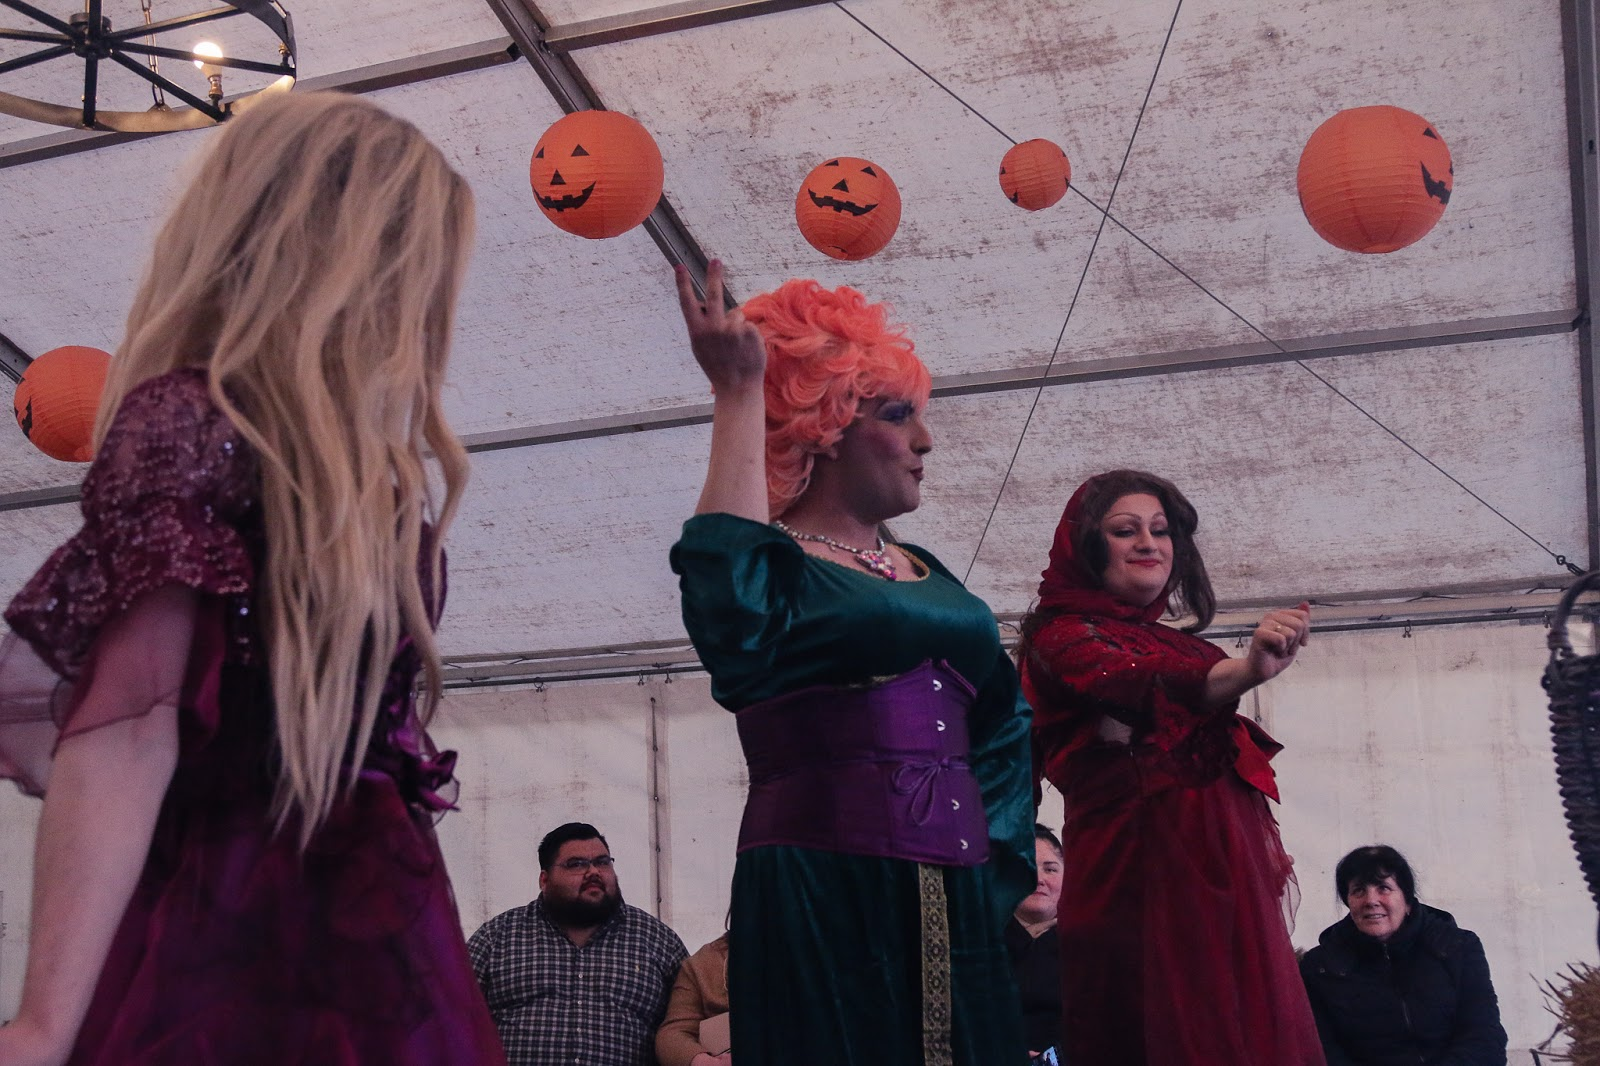 Mid shot of the three witches dancing at the M&D's pumpkin festival - Three drag queens dressed up as the three hocus pocus witches dancing.